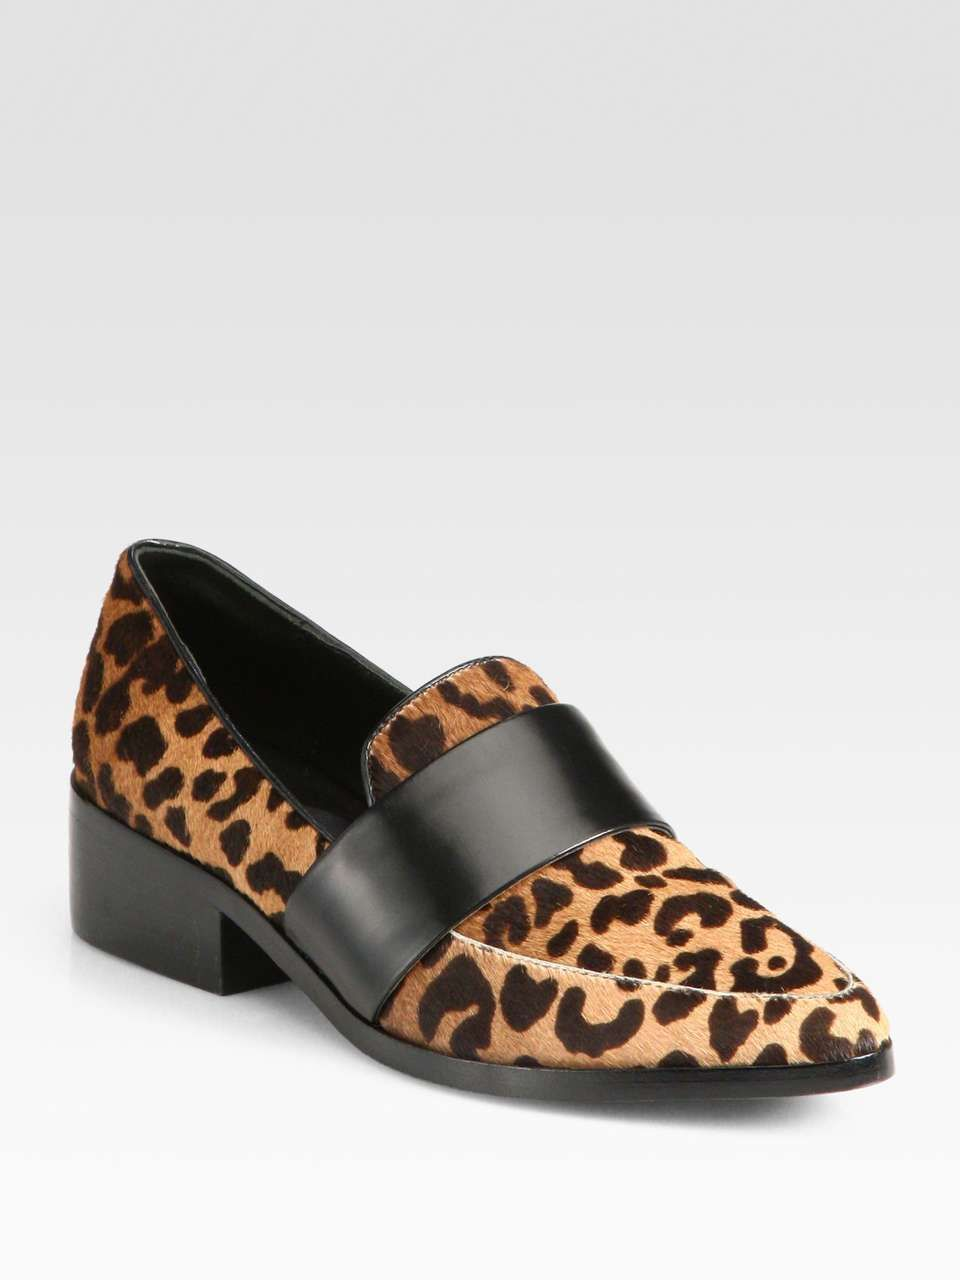 3.1 Phillip Lim Quinn Leopard-Print Calf Hair & Leather Loafers | womens  flat shoes